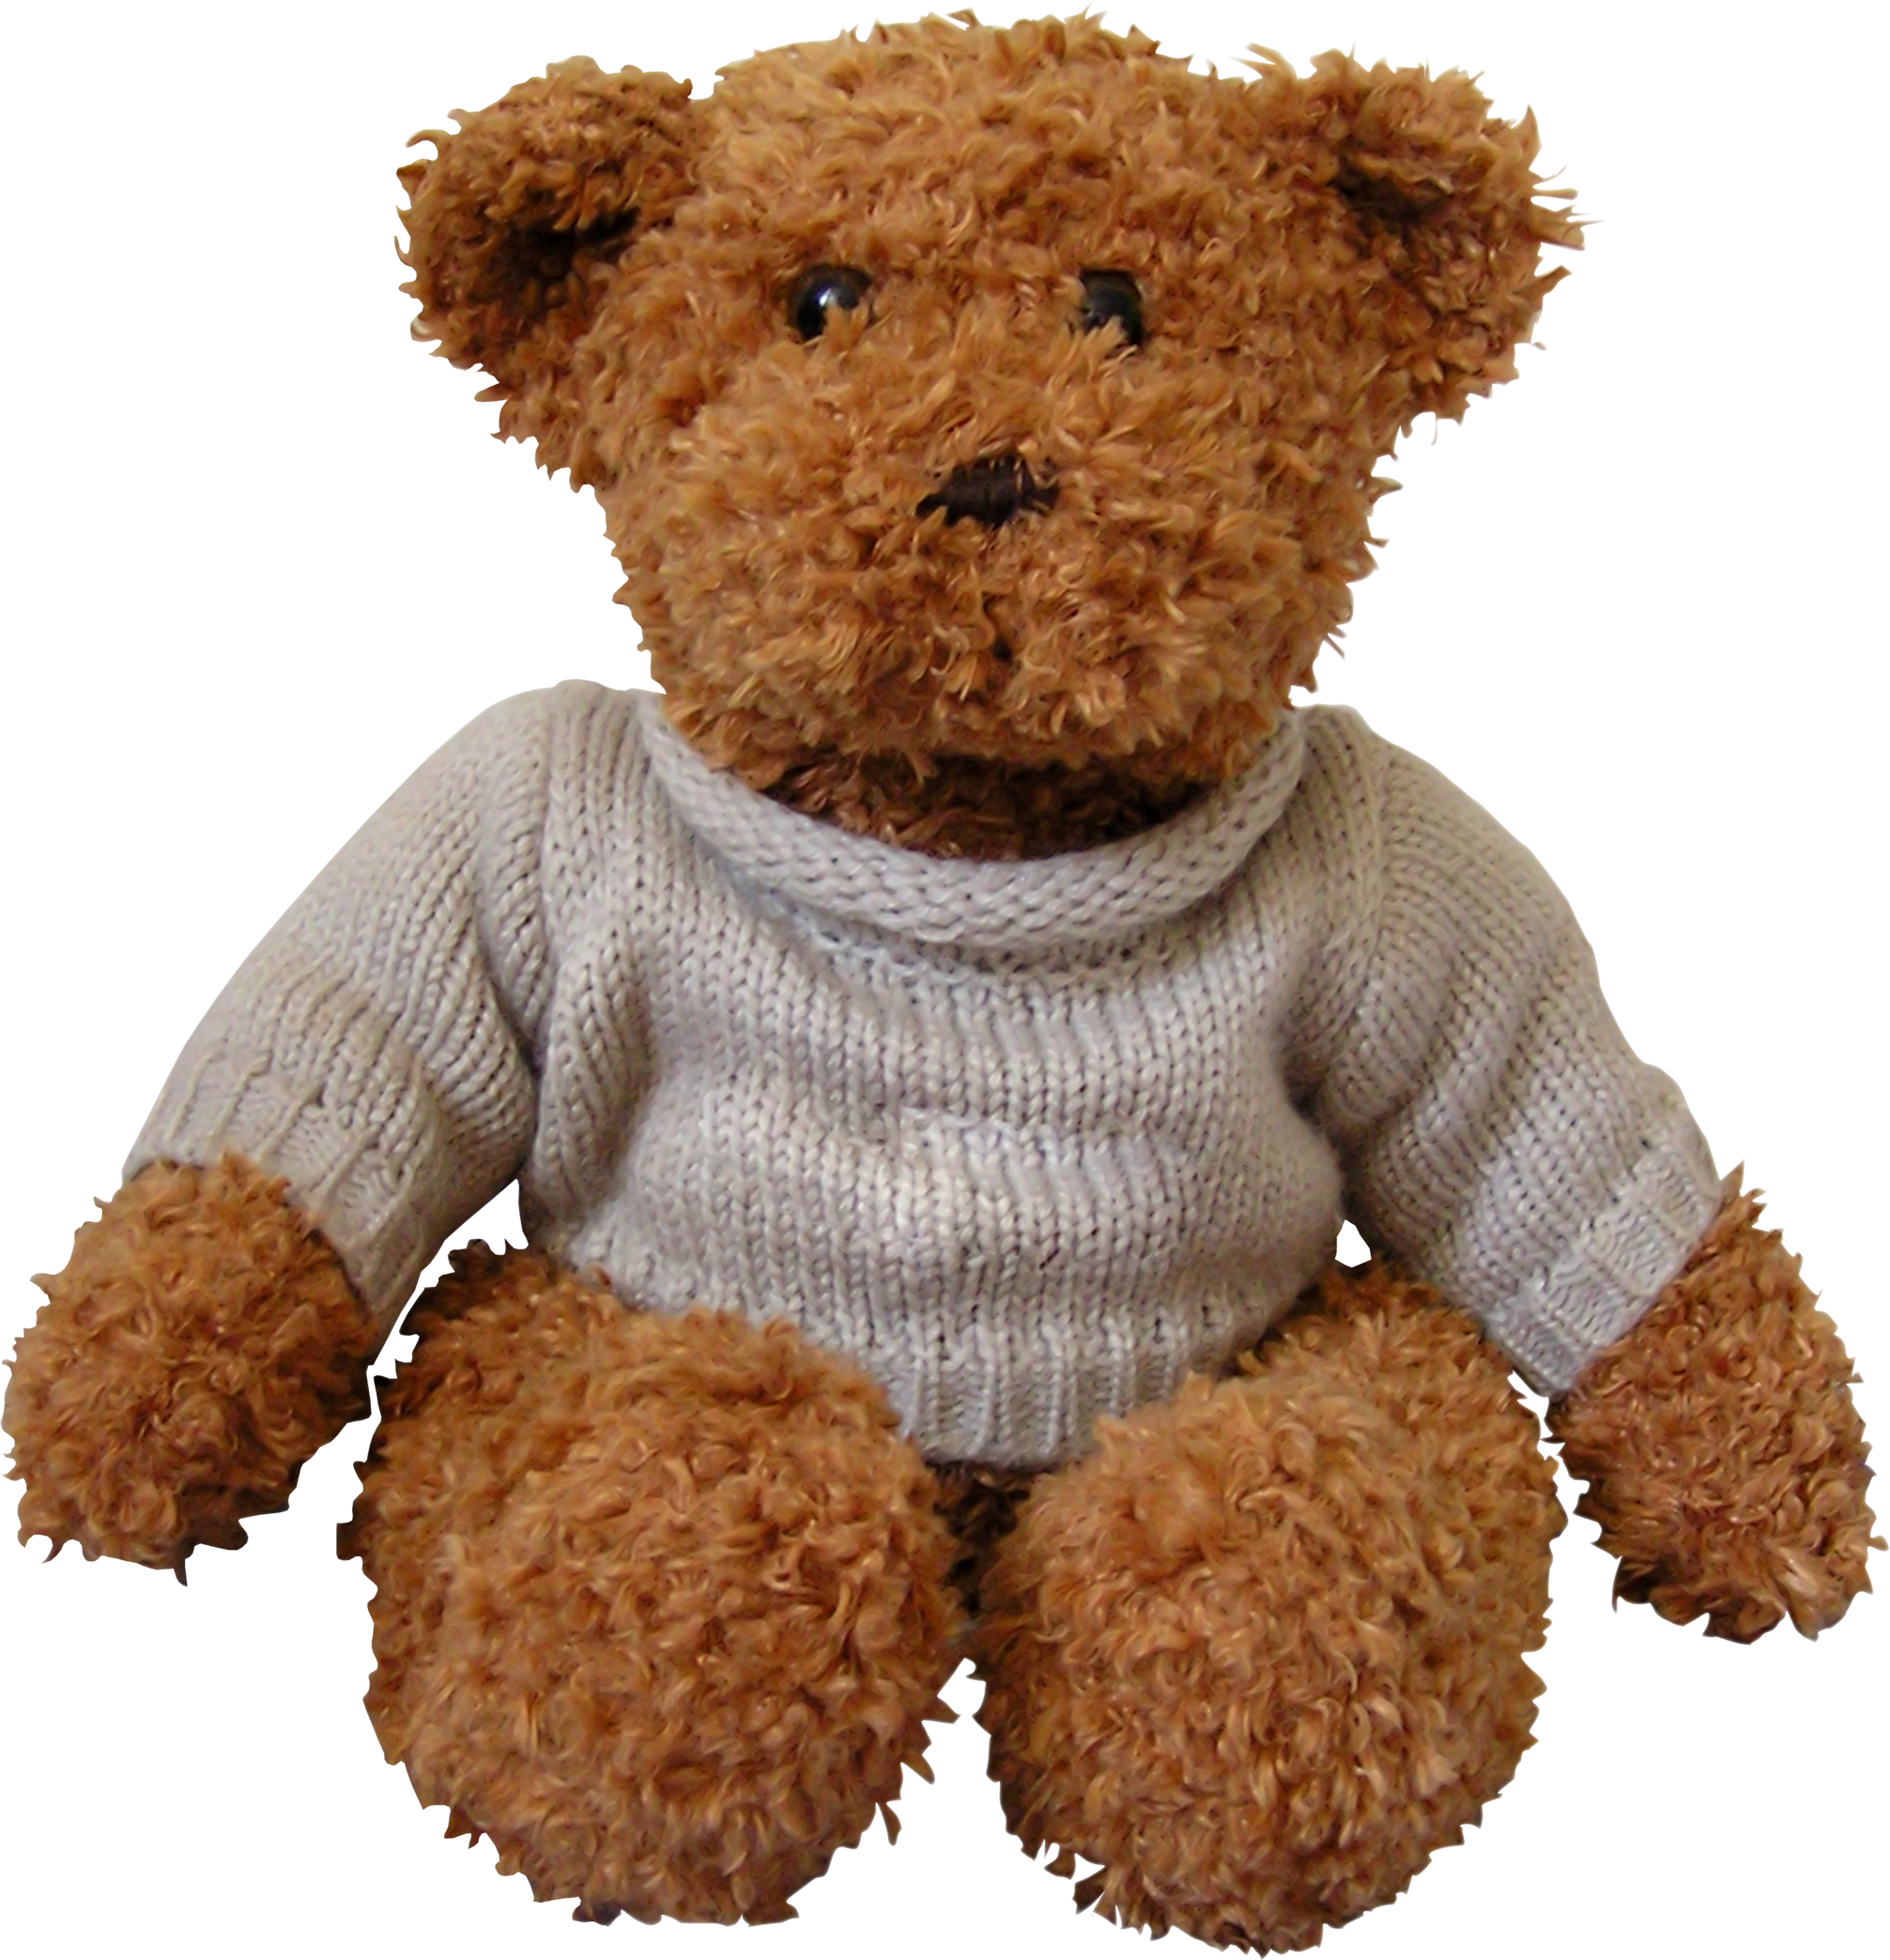 Stuffed clipart transparent background. Bear png in high